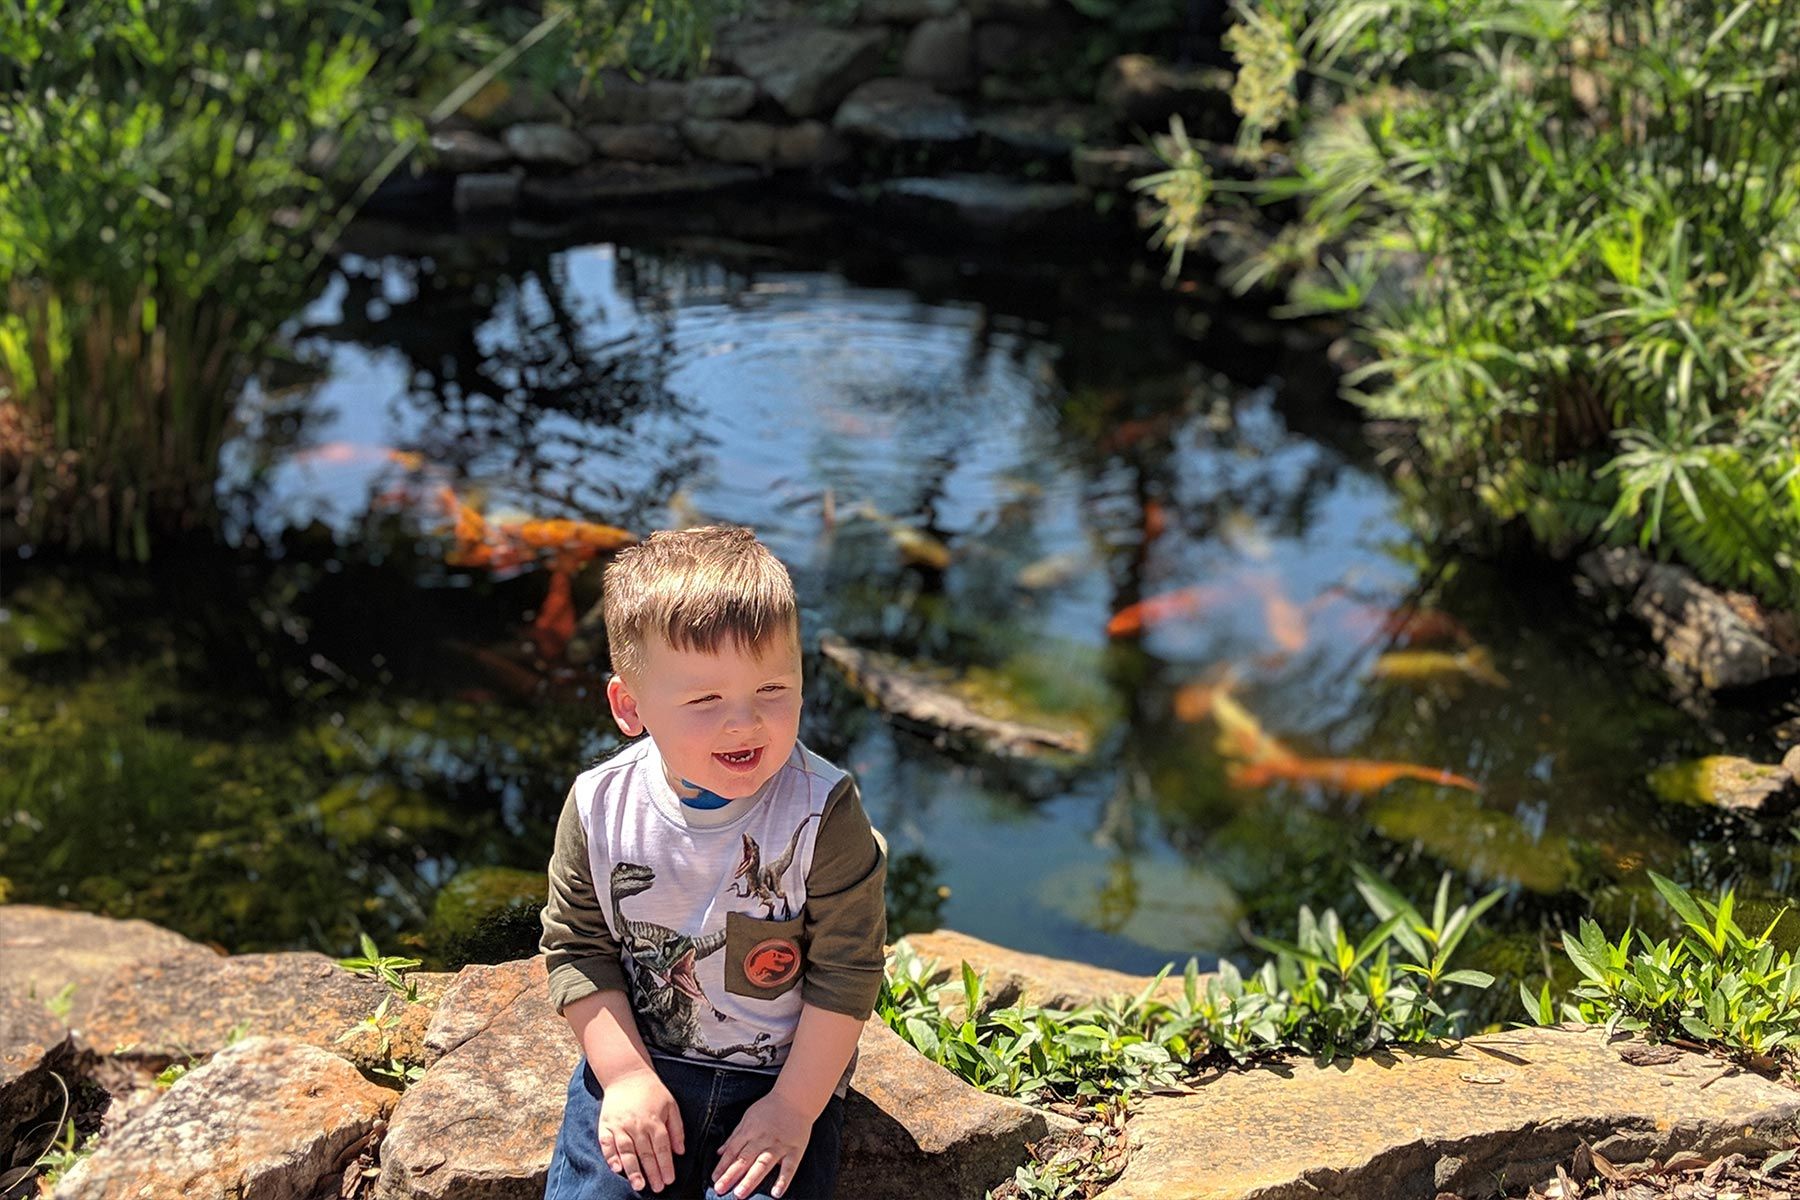 Kase smiles while sitting on some large rocks in the sun. A koi pond filled with fish is behind him.